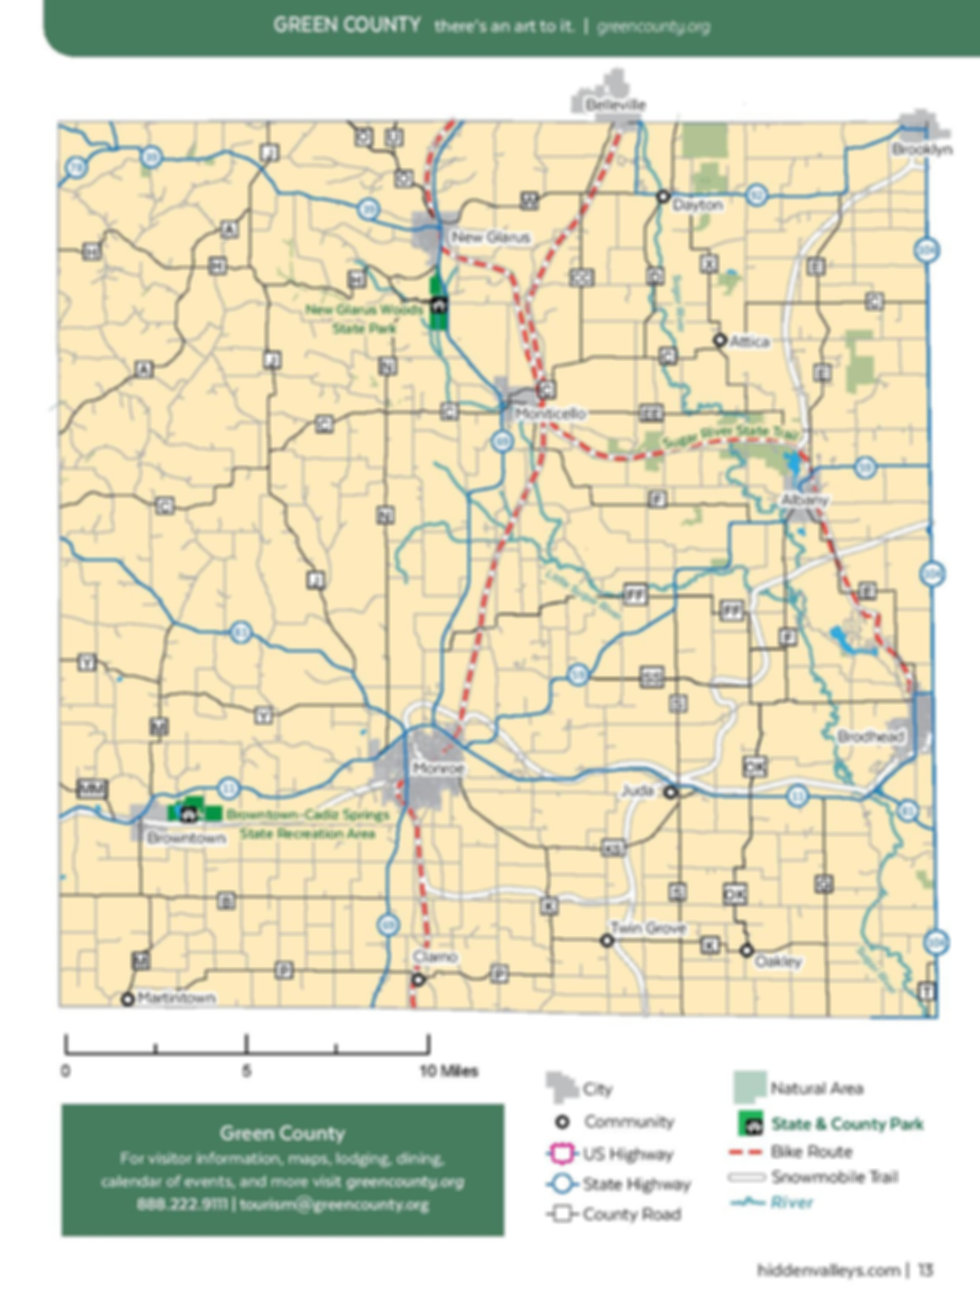 2018-green-county-map-page-001.jpg